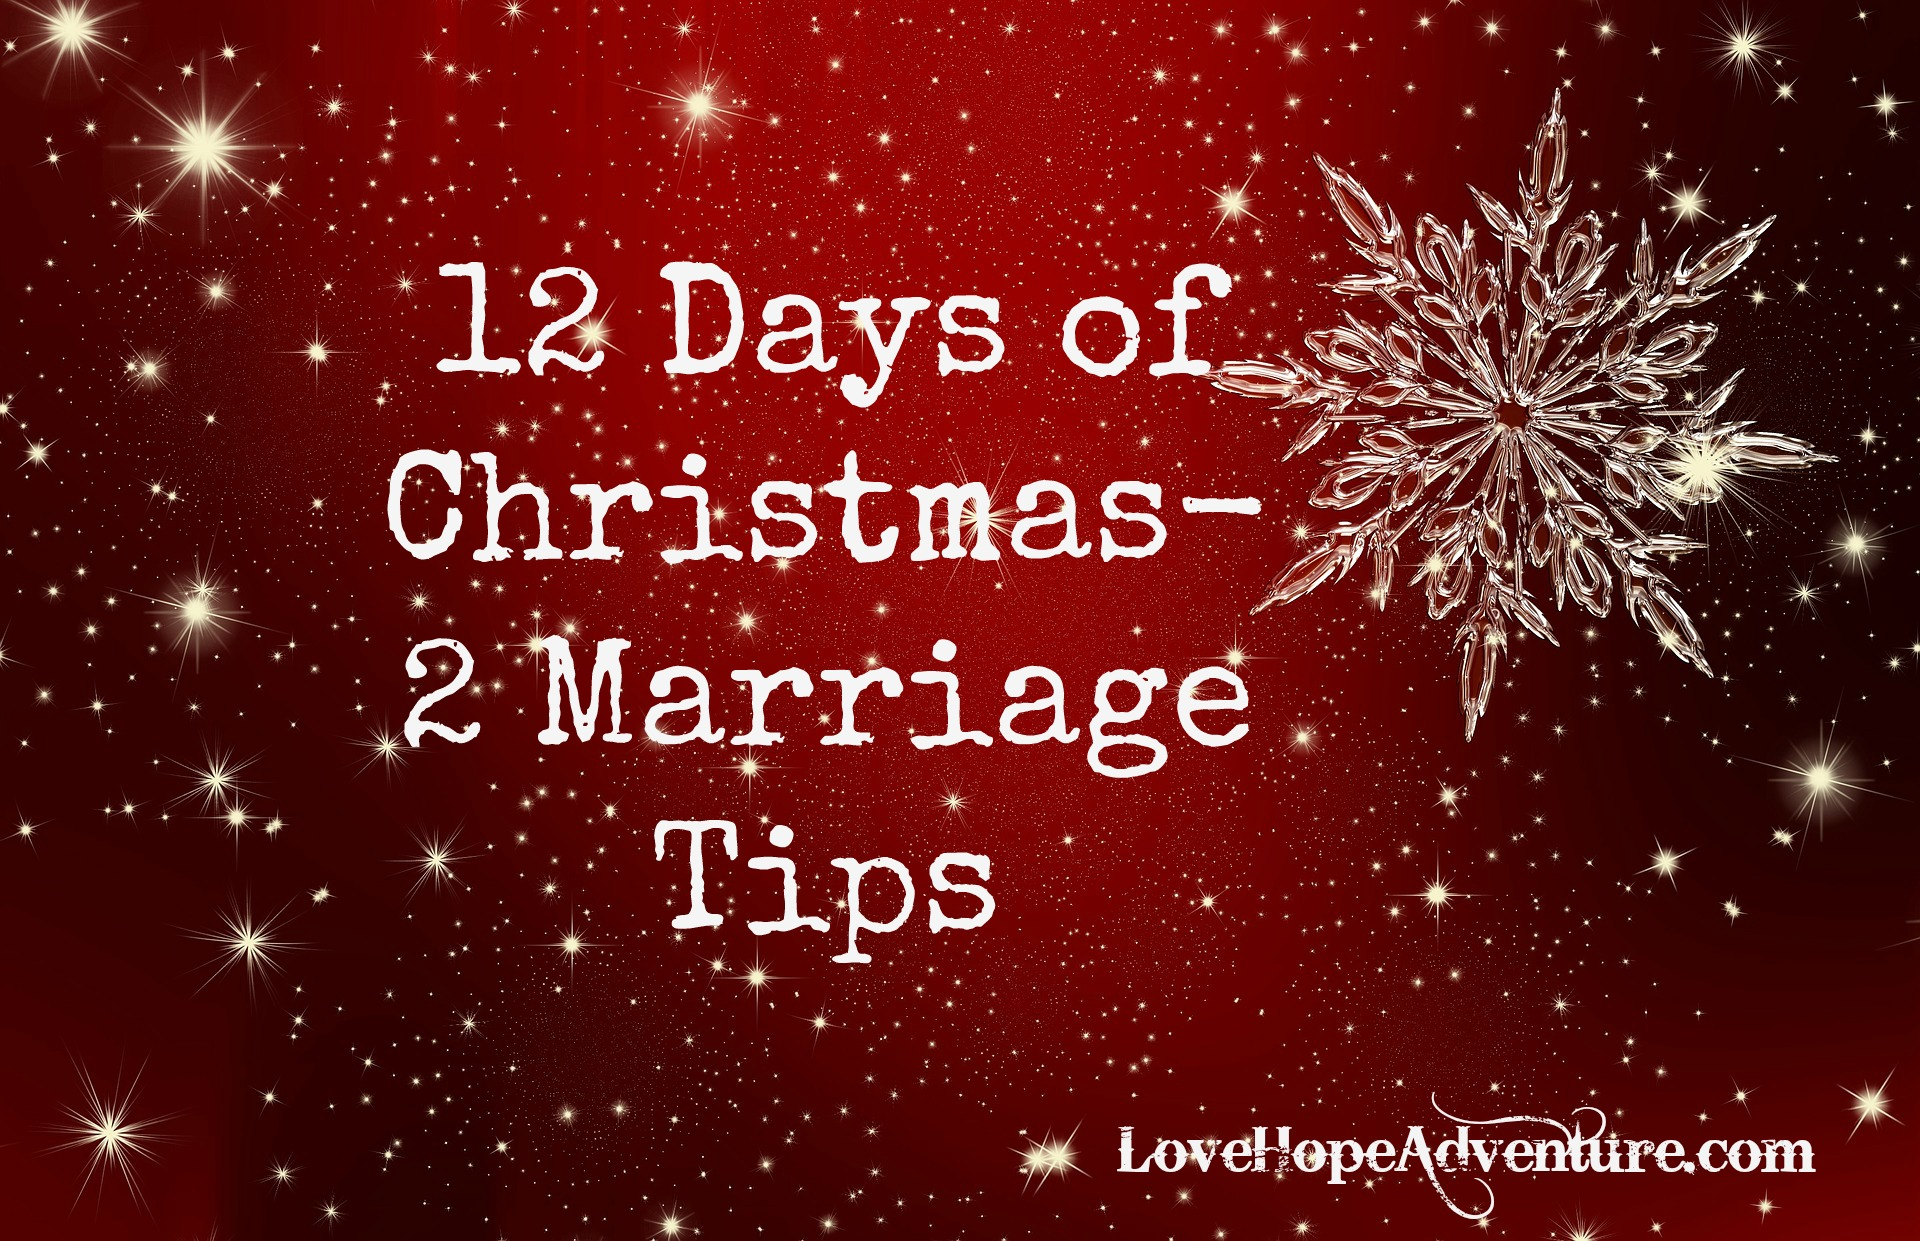 12 Days of Christmas 2 marriage tips